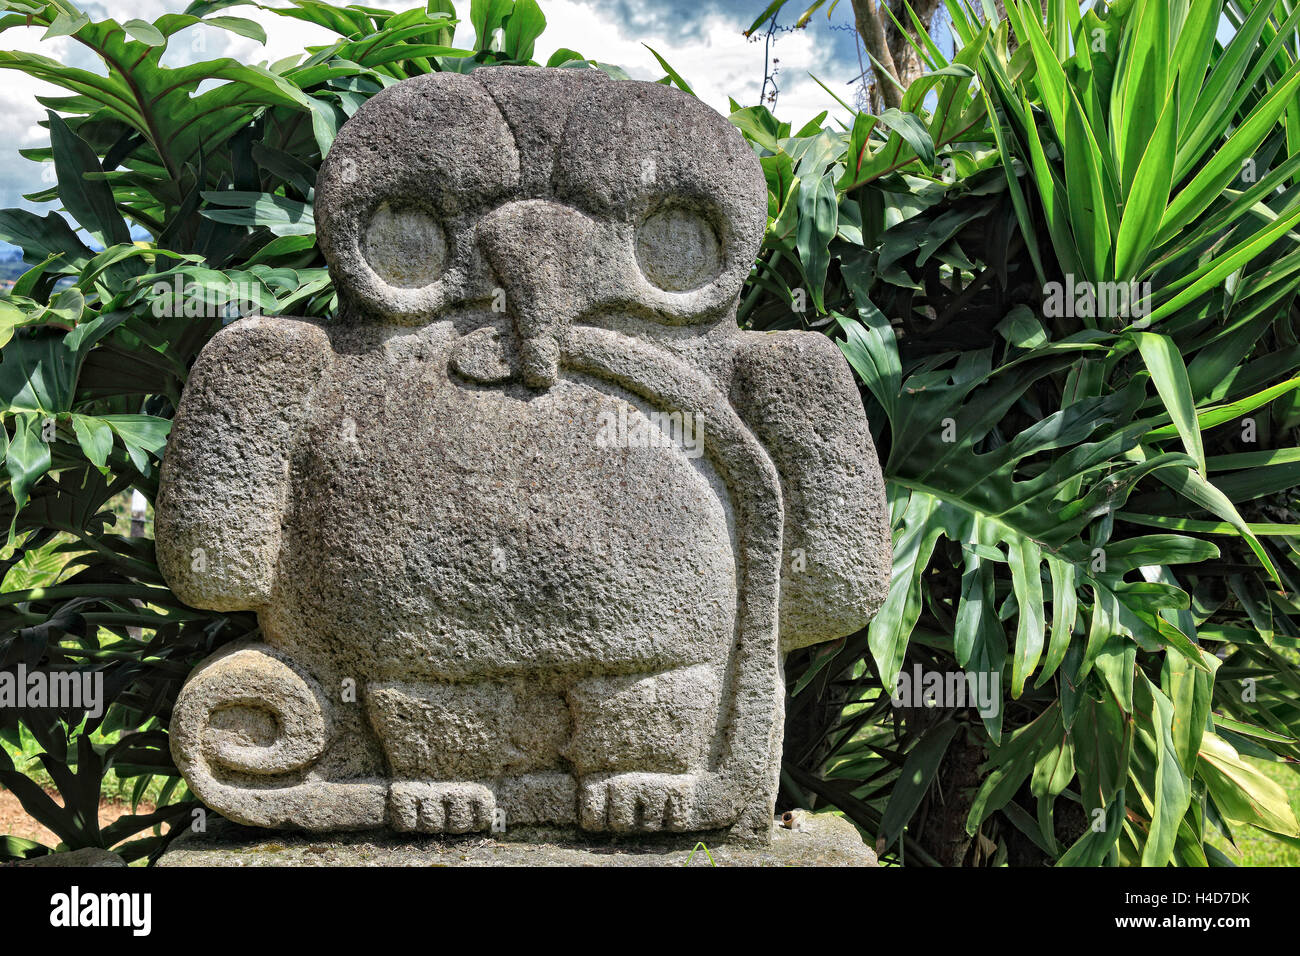 Republic Colombia, San Agustin, Departamento Huila, archaeological excavation site, statue, prehistorically, lava, - Stock Image